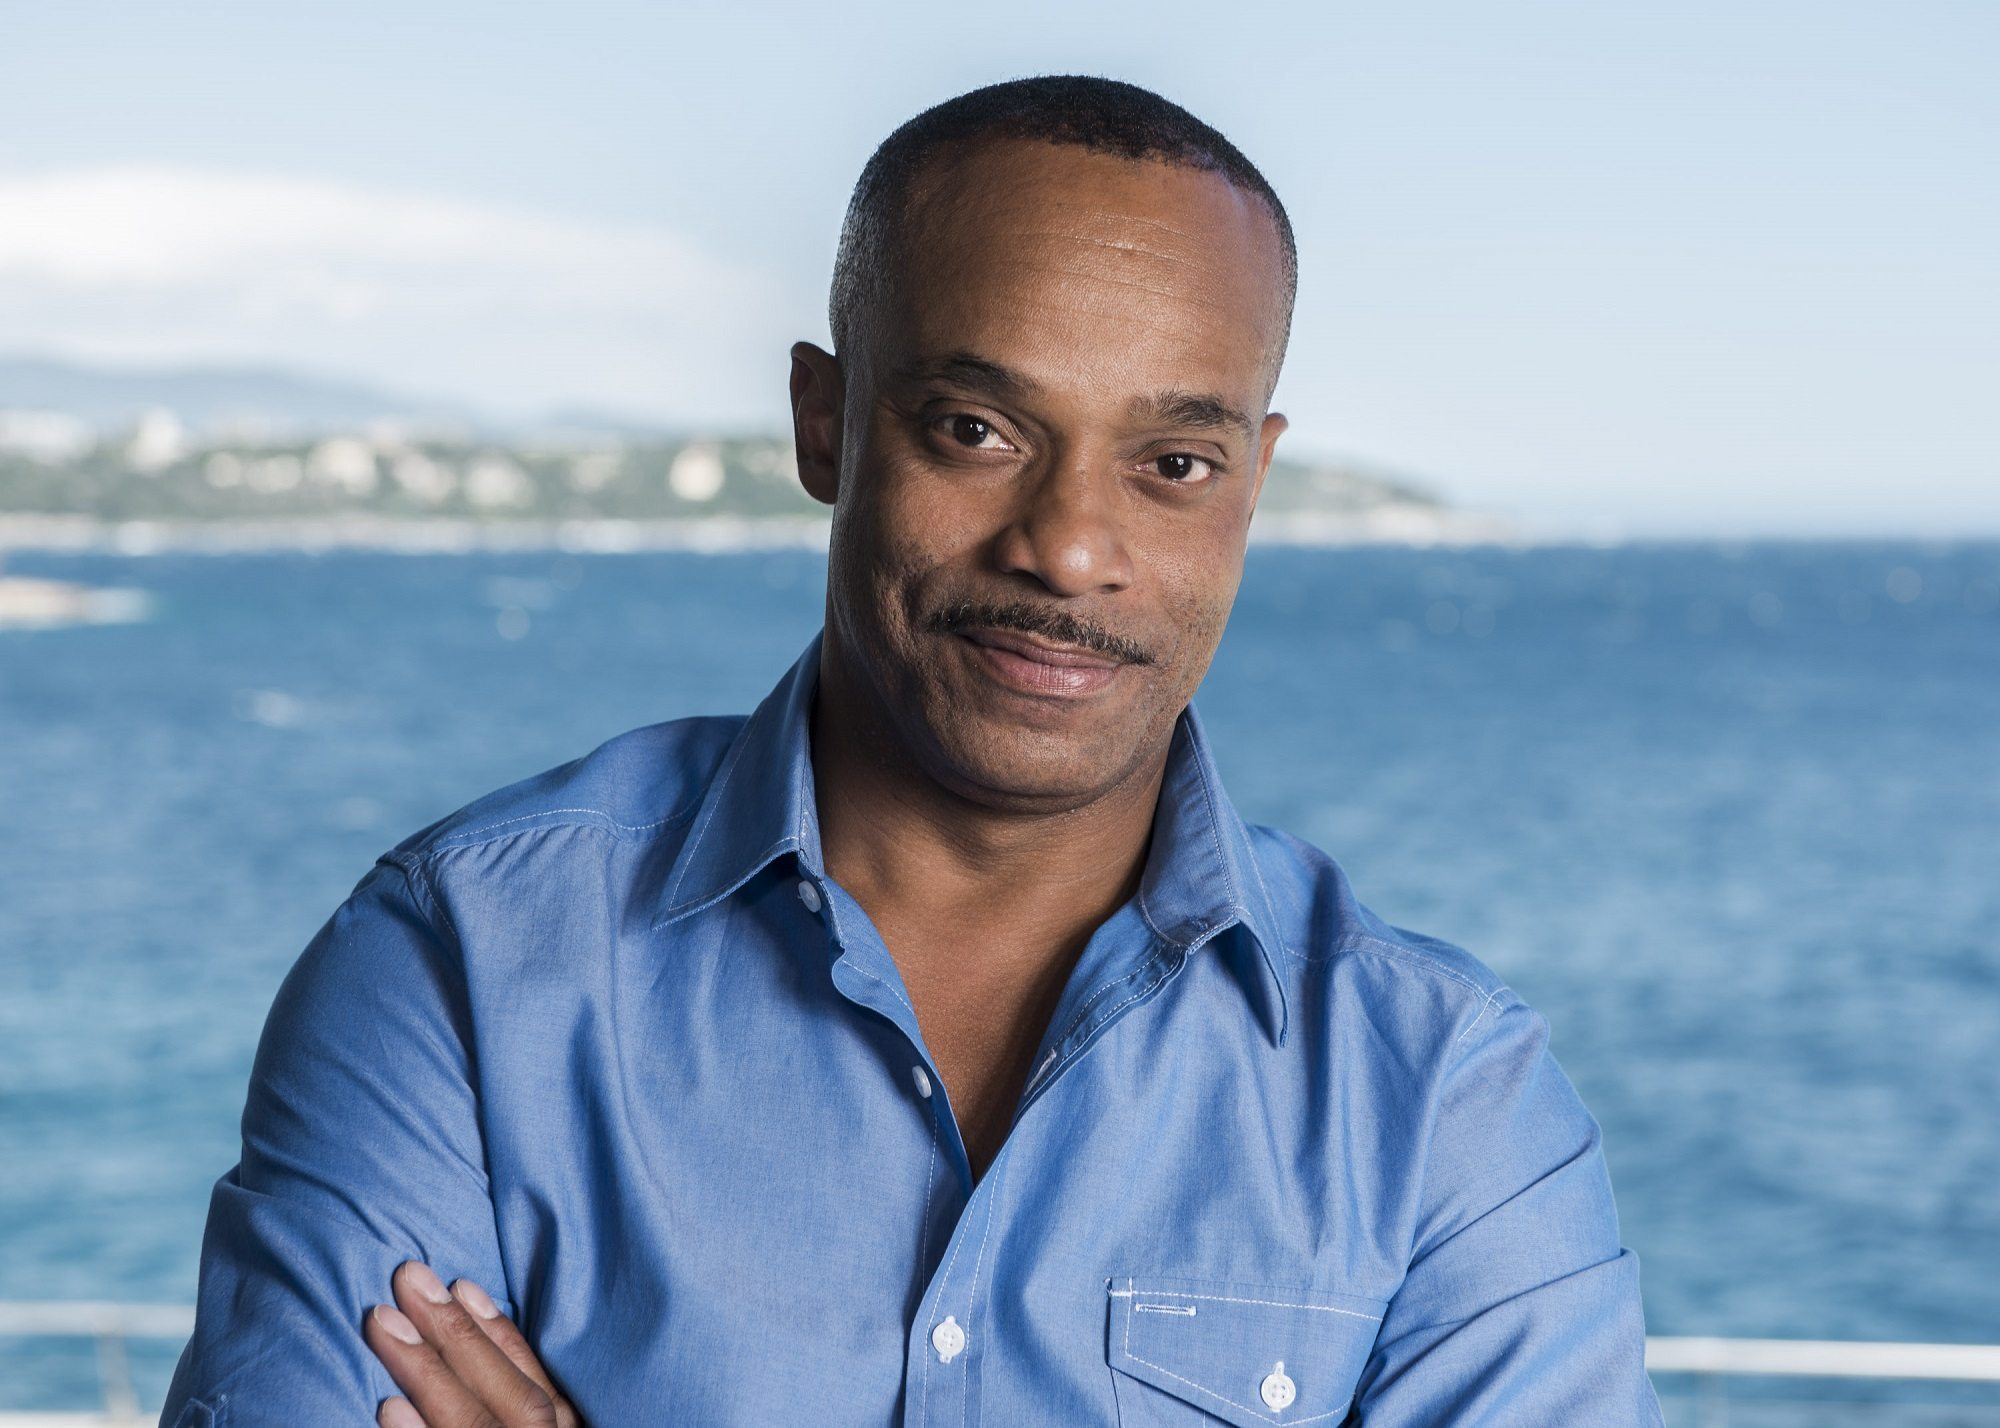 Rocky Carroll's early roles weren't memorable, but that changed well before he joined the 'NCIS' cast.